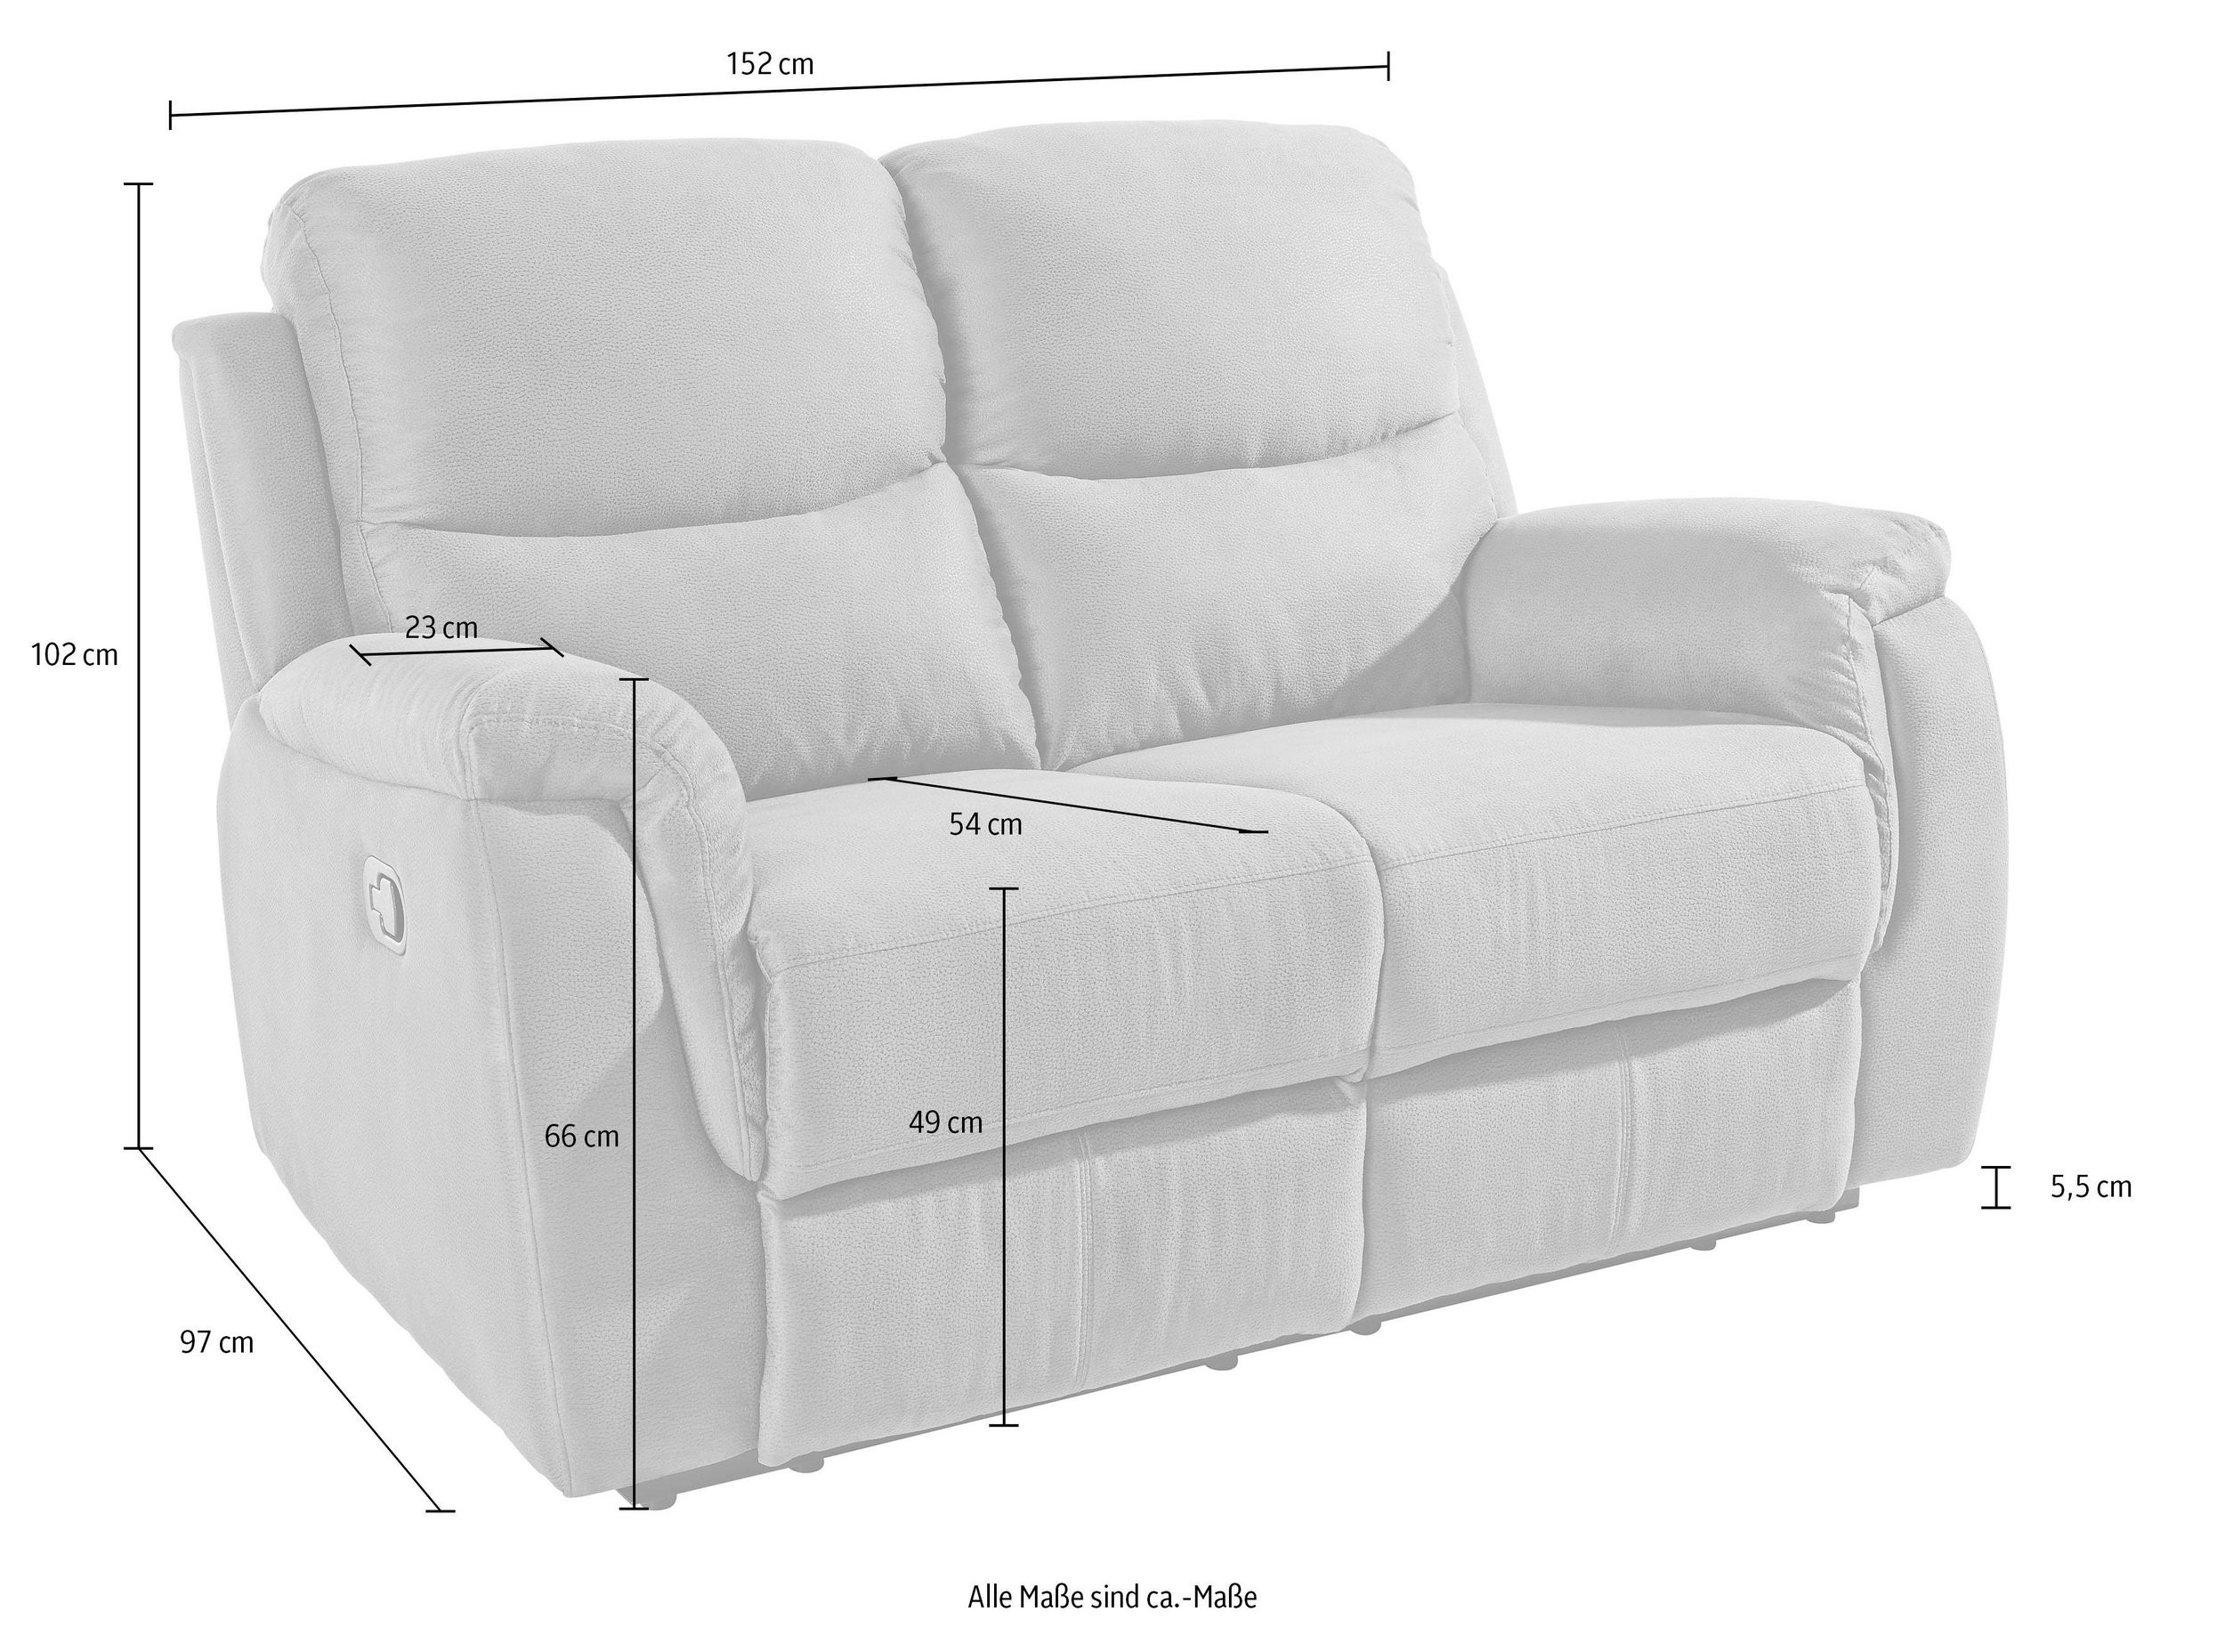 2-Sitzer Sofa Diana mit Relaxfunktion